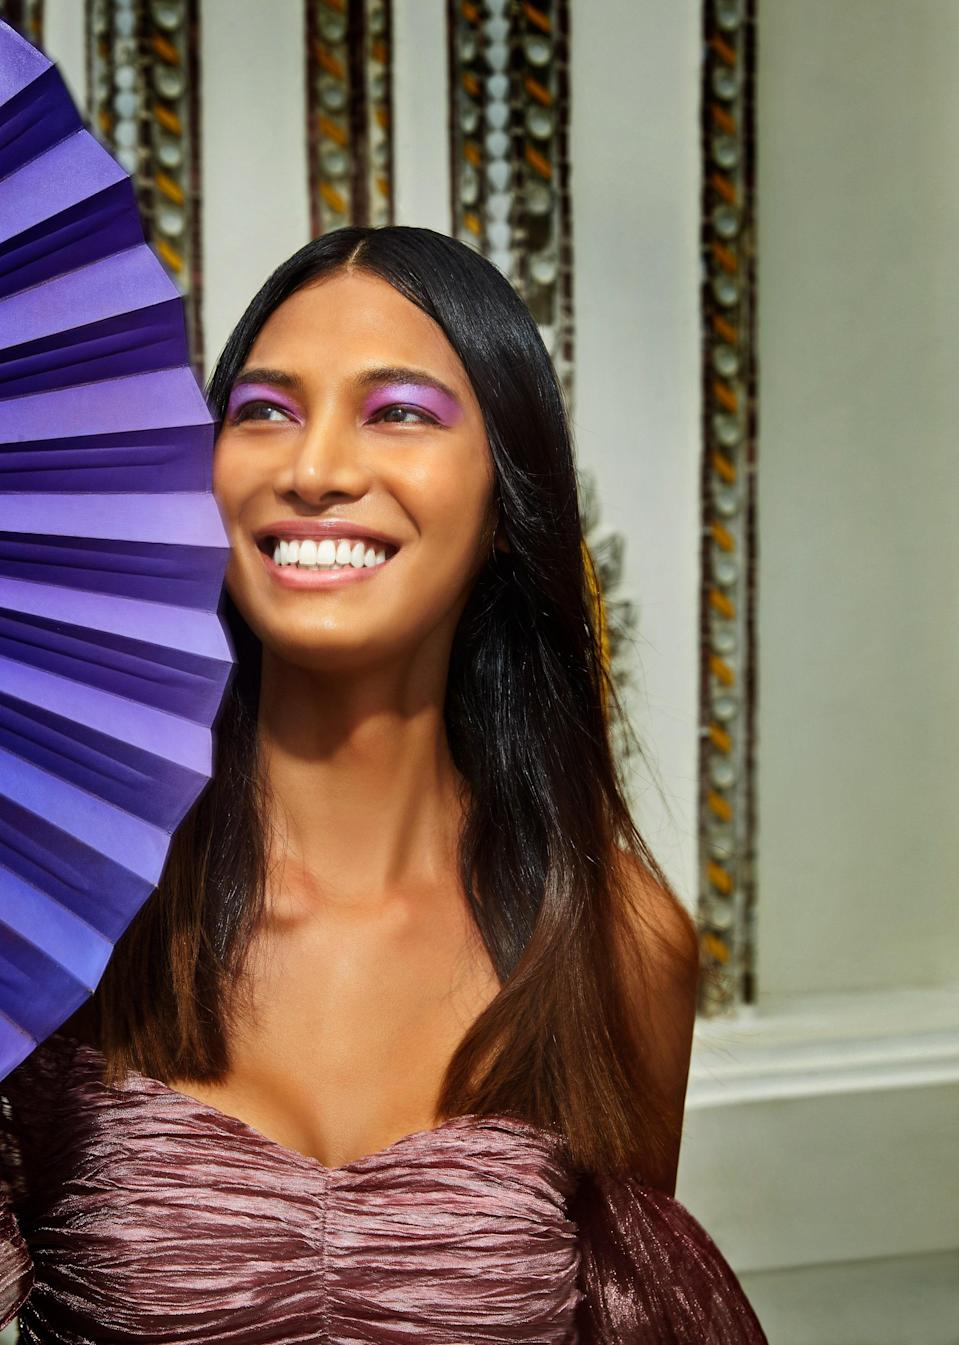 """""""I used to buy all kinds of whitening skin-care products, but now I realize that this is my skin and I should be more proud of myself. I am perfect,"""" says Kulchaya. Barose created her lotus-inspired shadow using two purples (Make Up For Ever Artist Color Eyeshadows in Lavender and Orchid) to mimic a flower petal. Milin dress."""